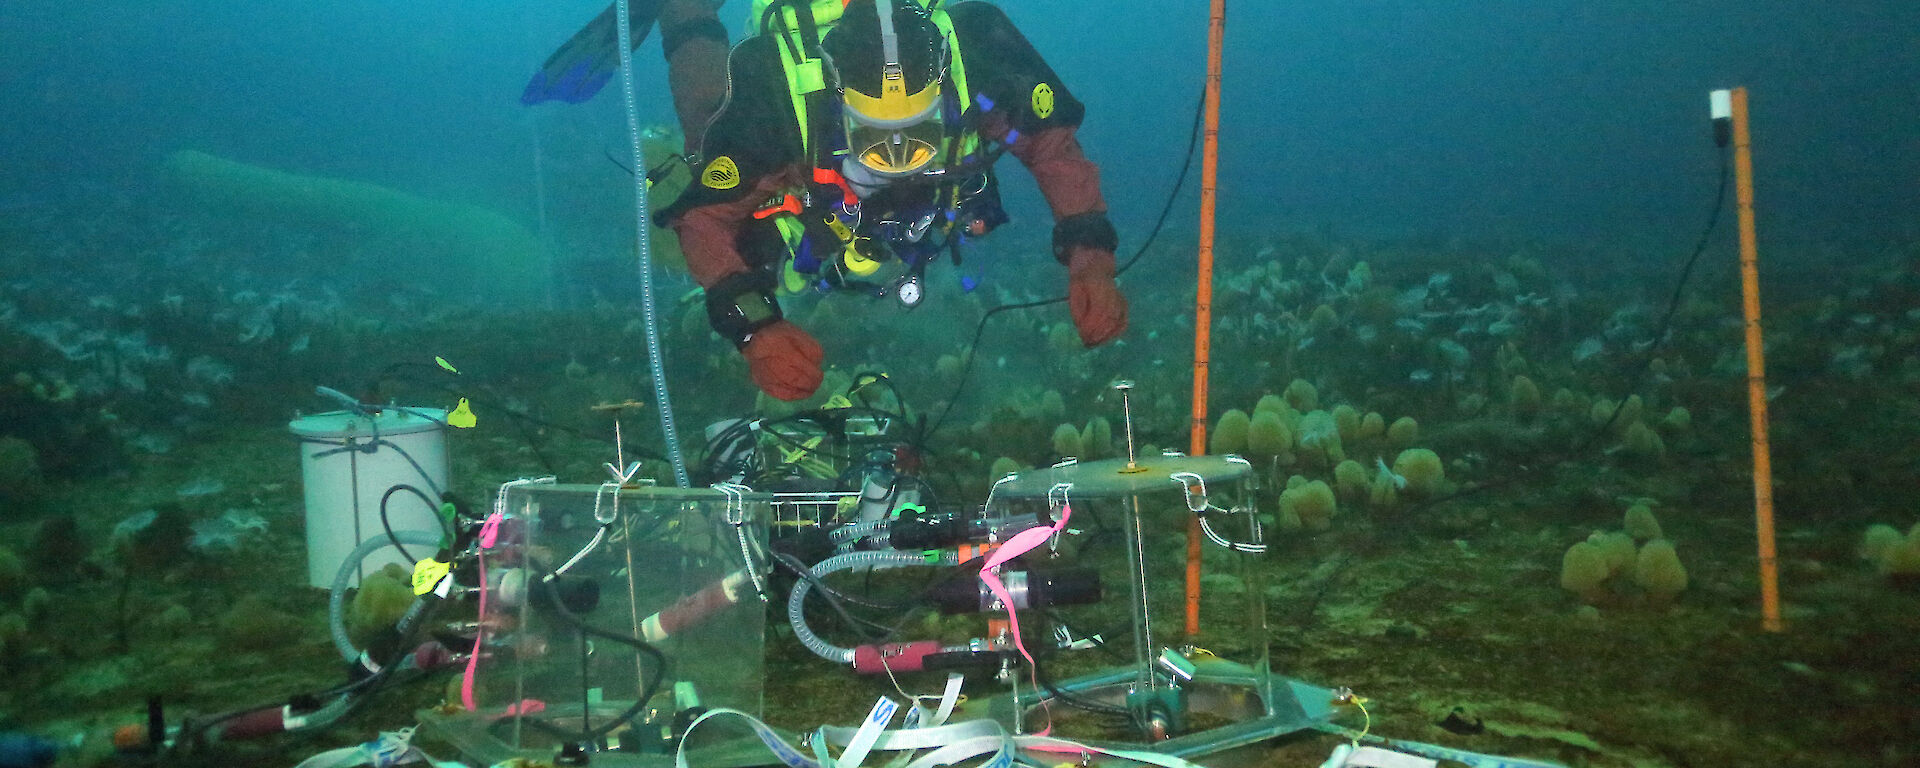 A diver installs a mini-chamber under the sea ice for ocean acidification experiments.